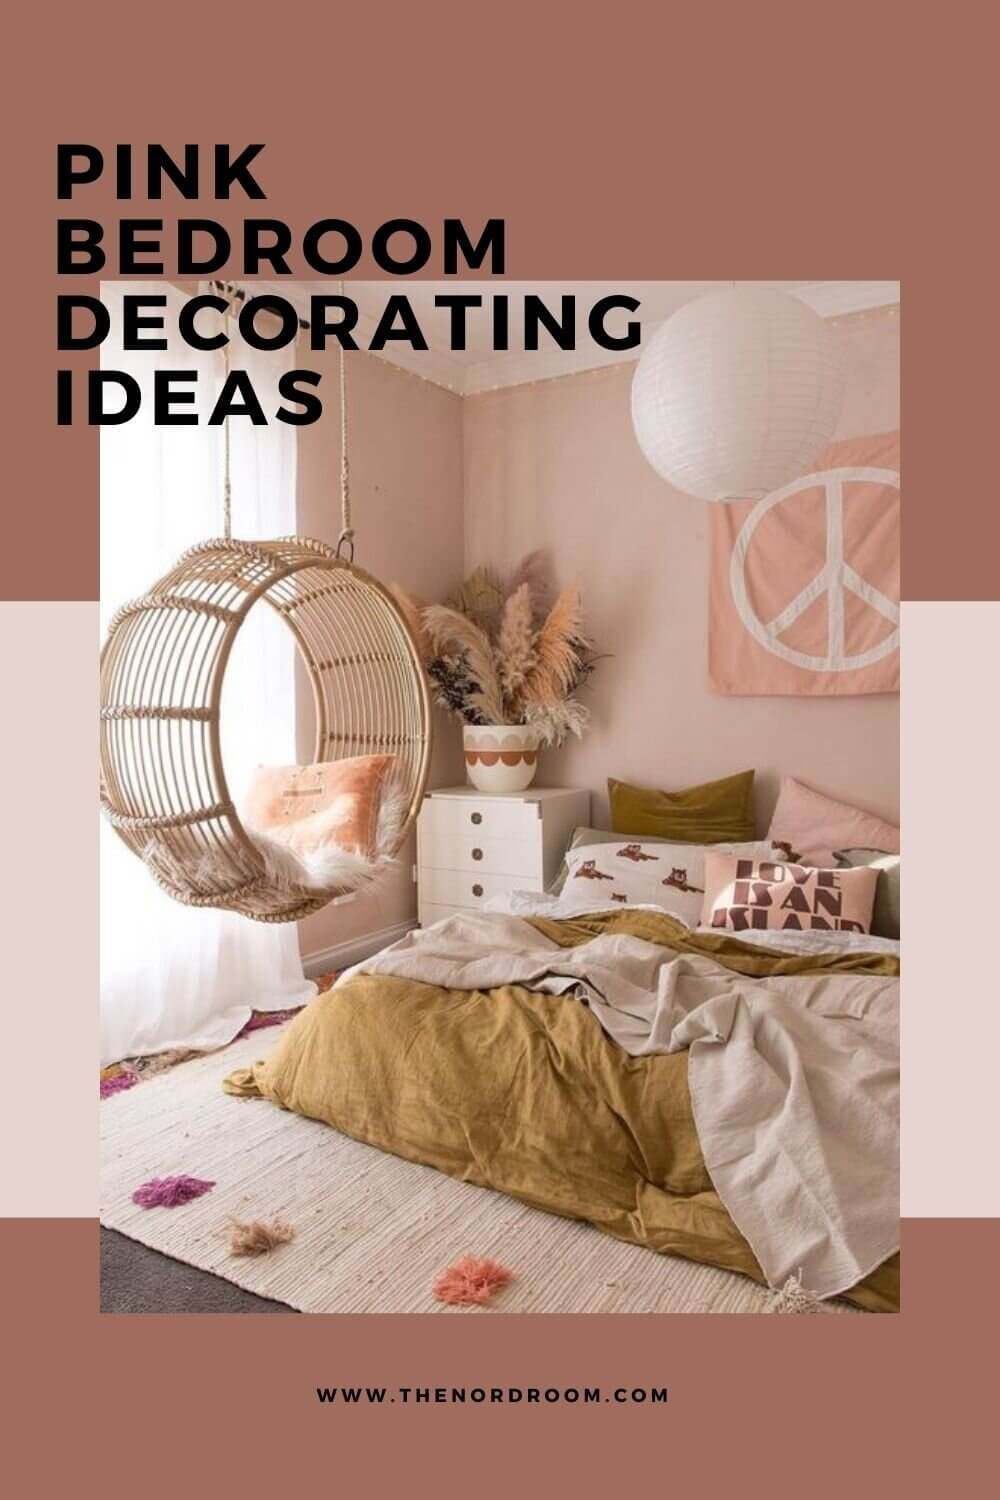 How To Style A Pink Bedroom